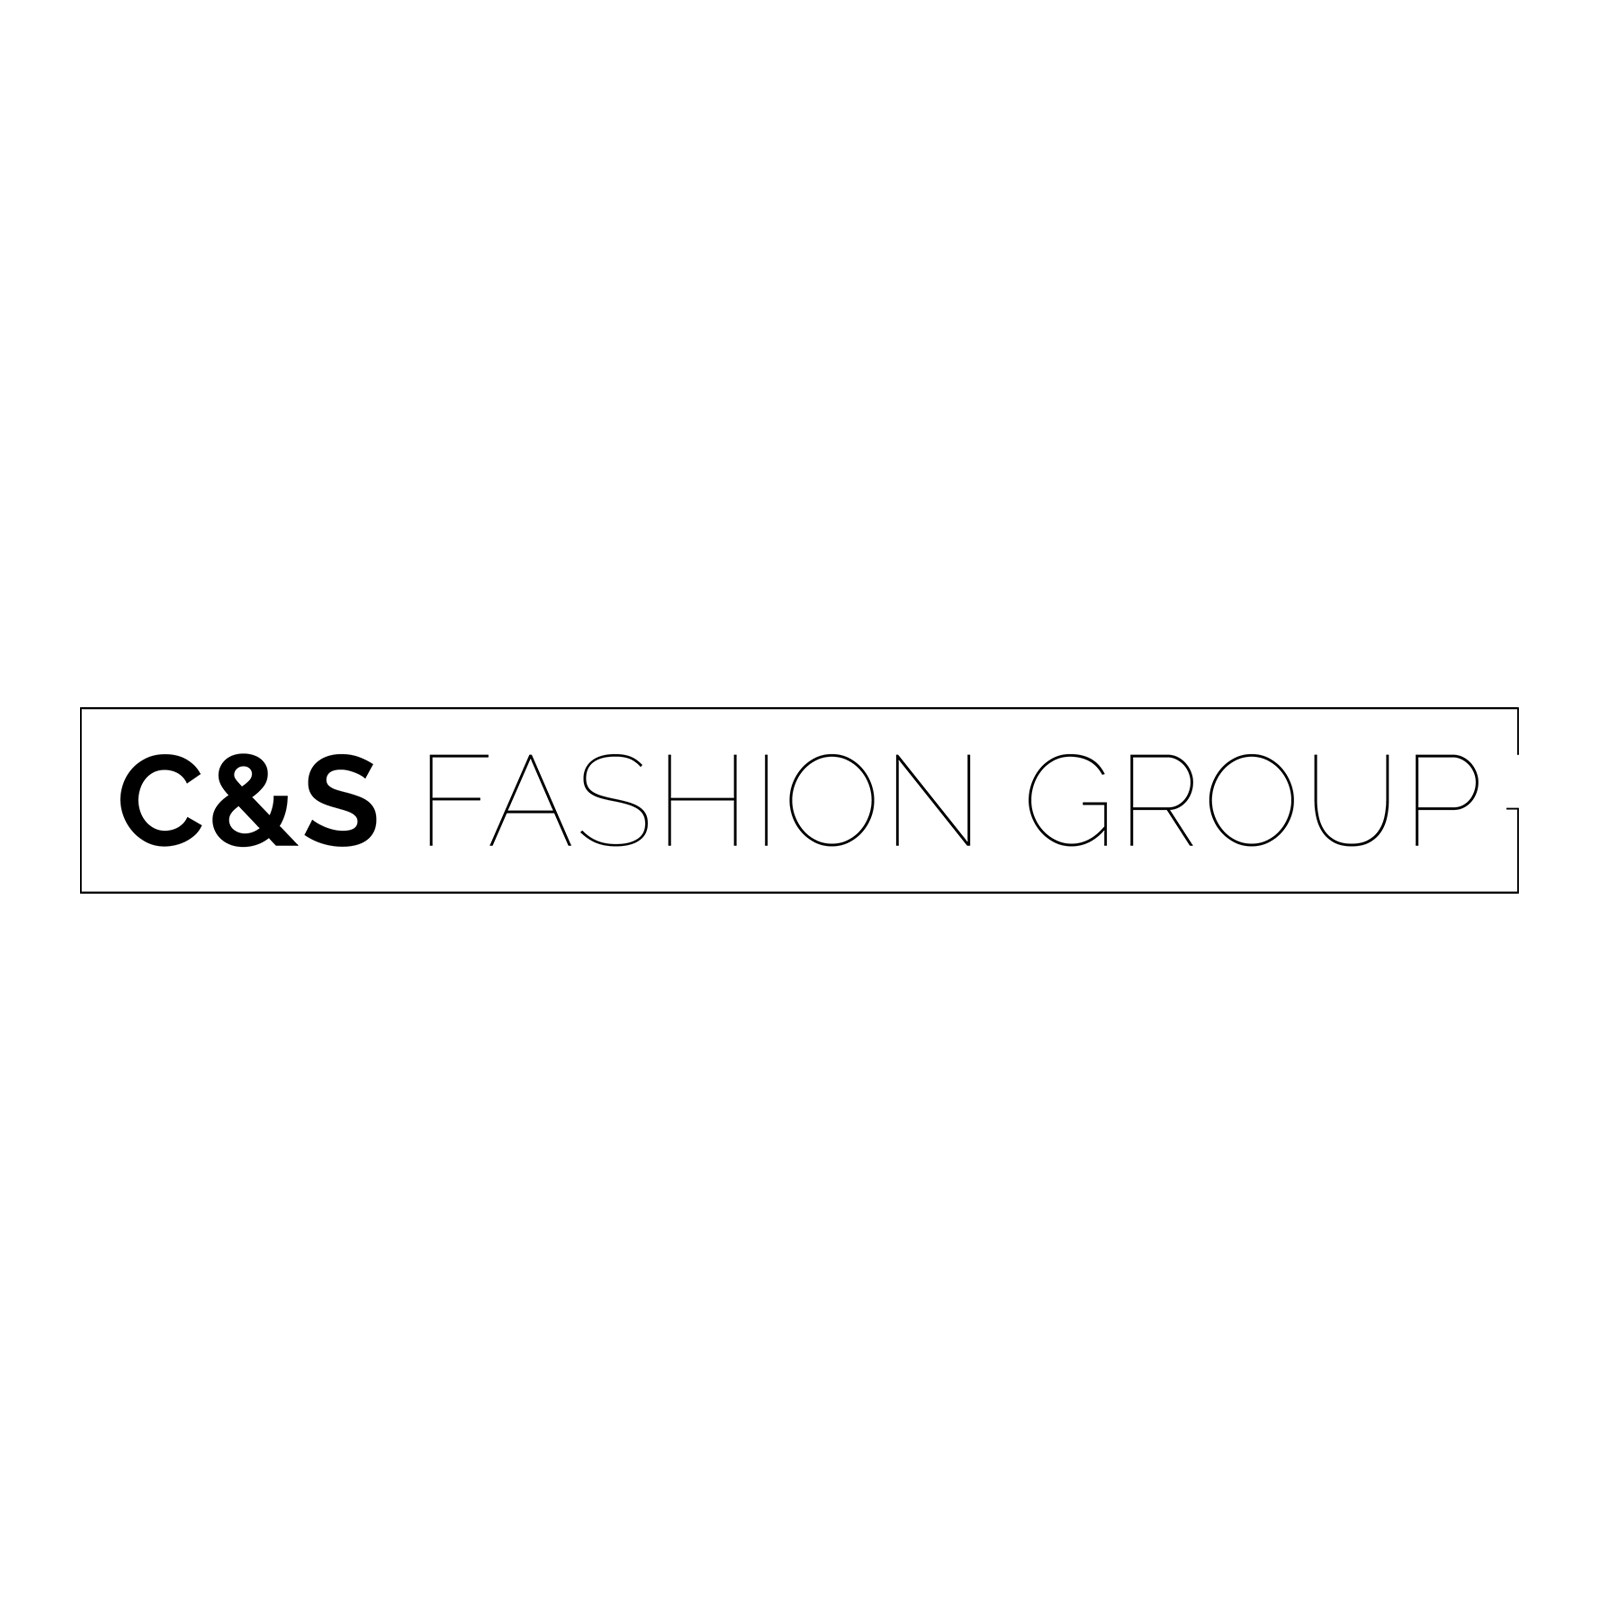 Customer Care & Marketing Support Fashion Branche bij C&S Fashion Group